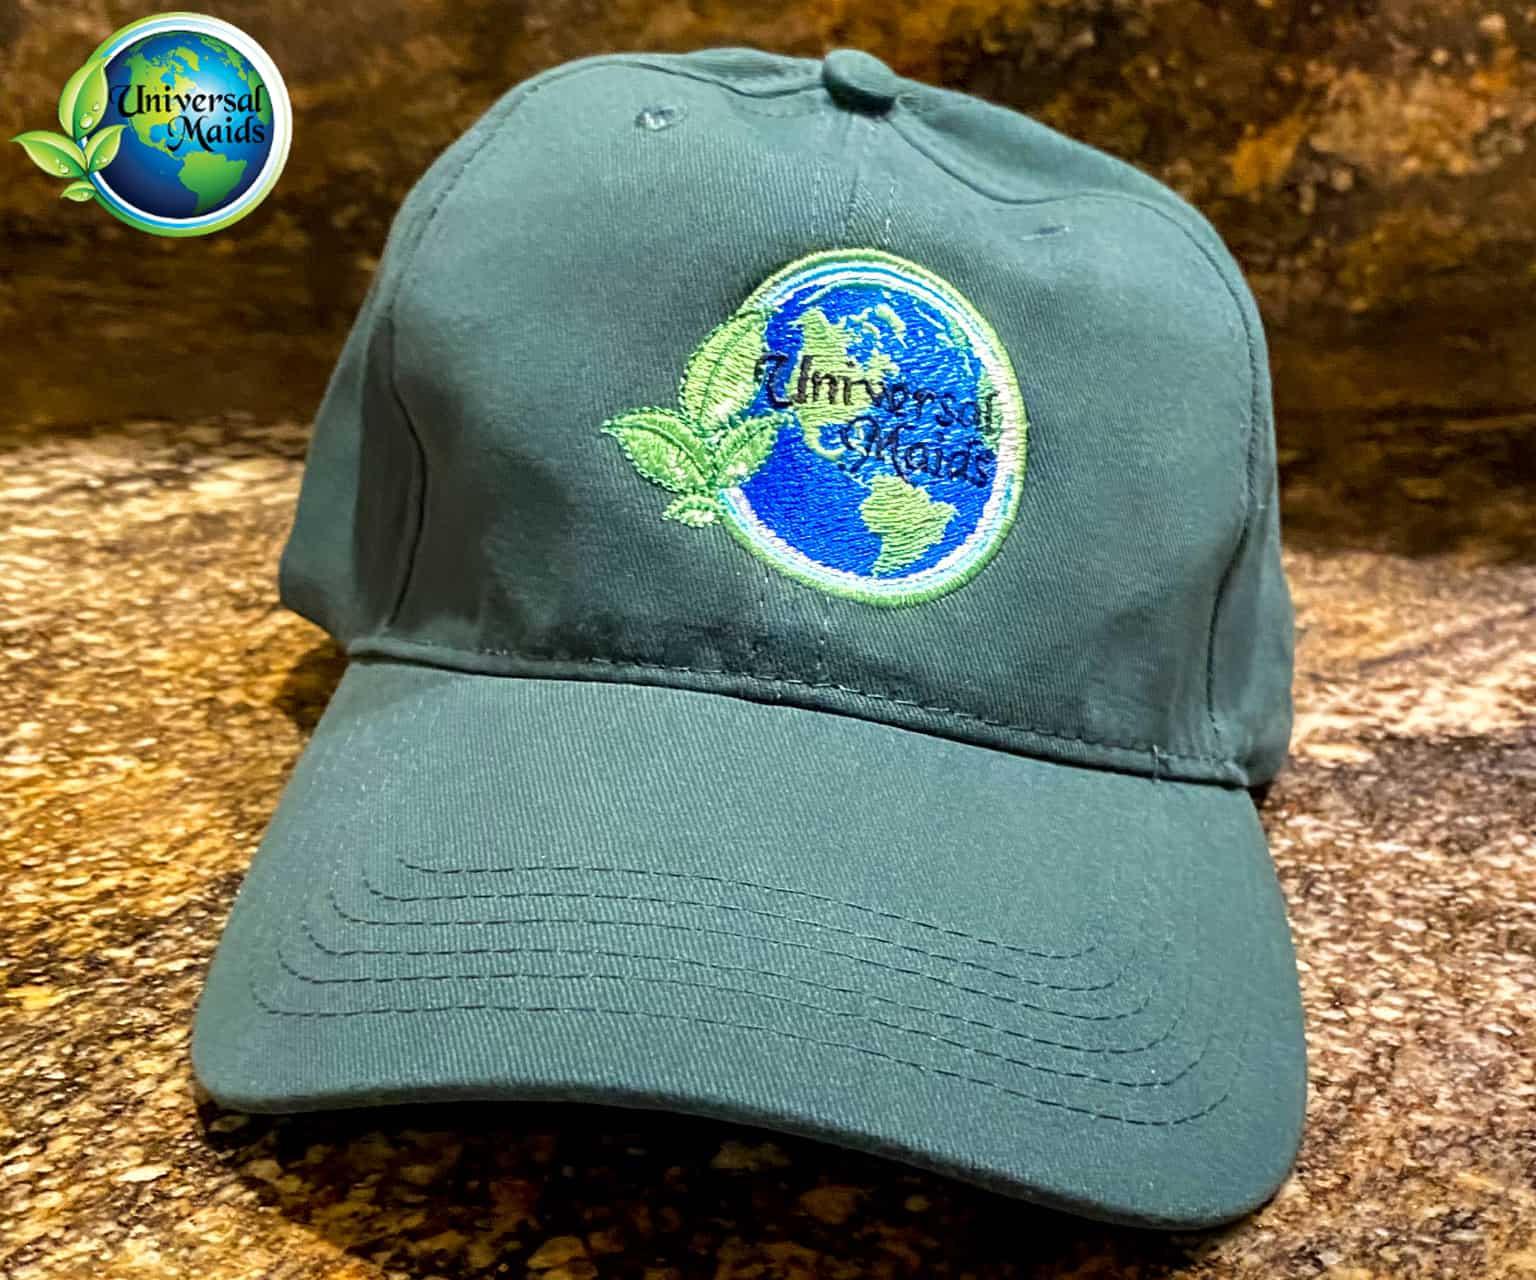 A hat with Universalmaids logo